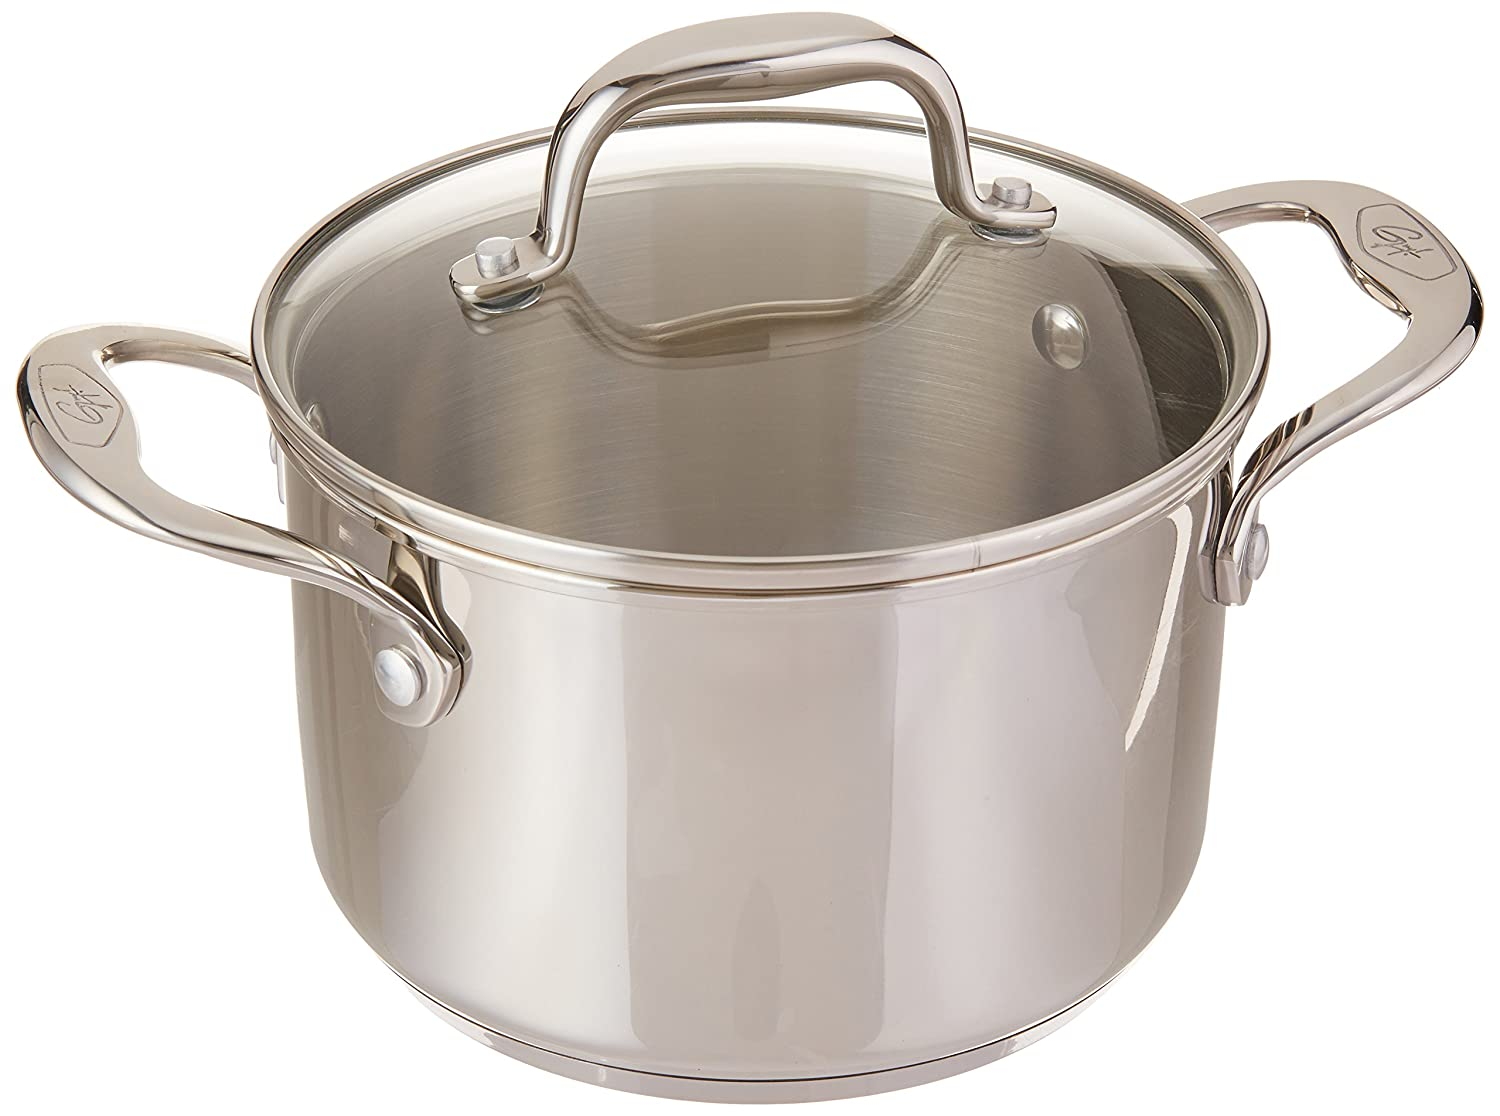 Amazon.com: Stainless Steel 3-qt Sauce Pot with Lid: Saucepans ...